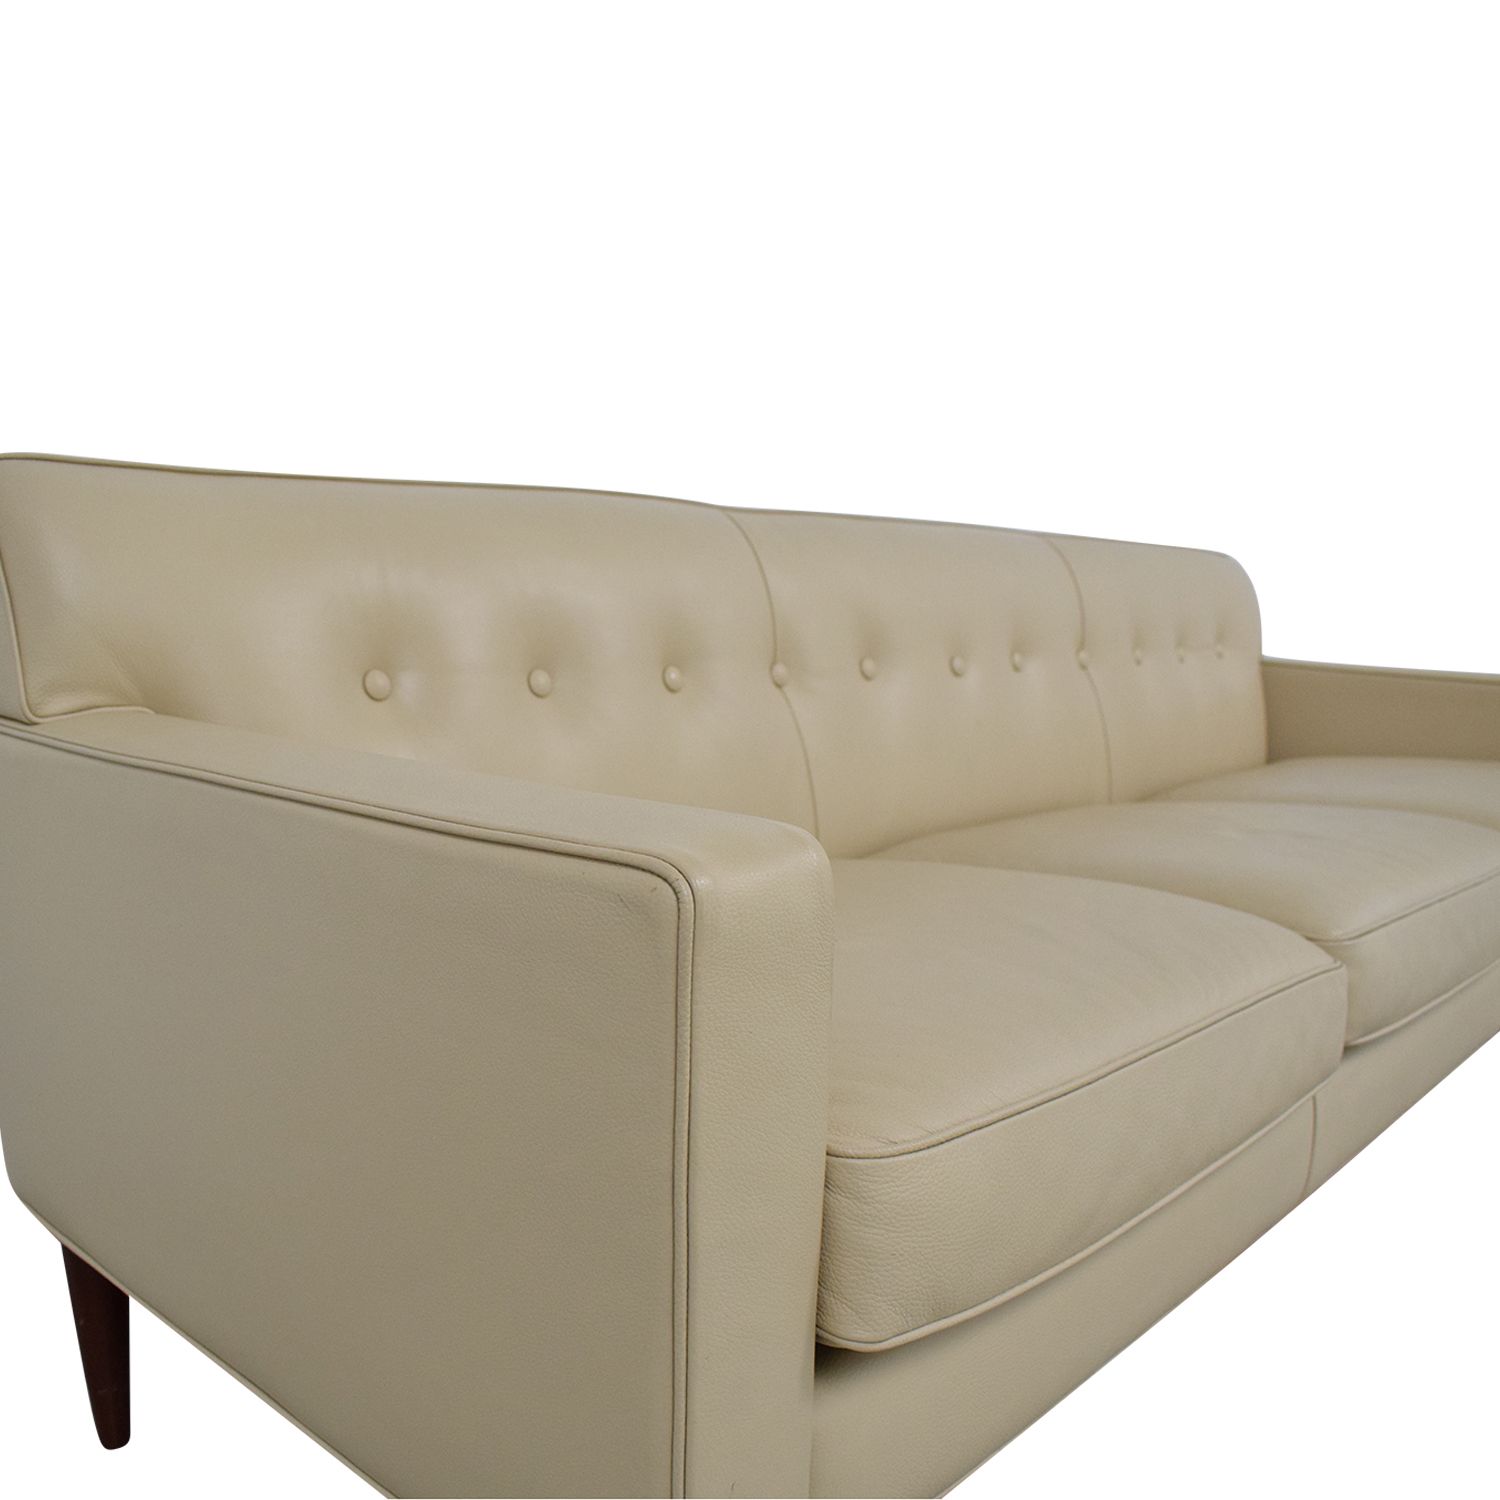 American Leather Quincy Sofa / Chaises